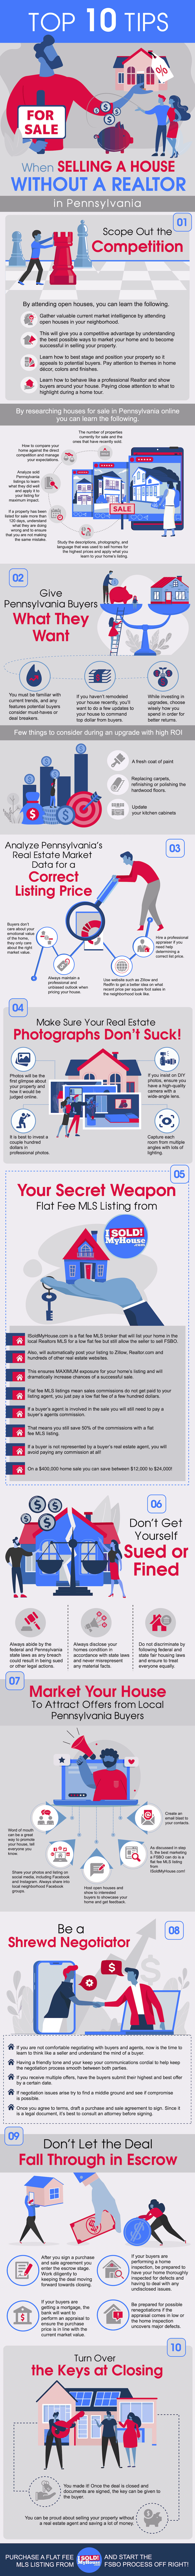 infographic of the 10 steps to sell a house in pennsylvania without an agent